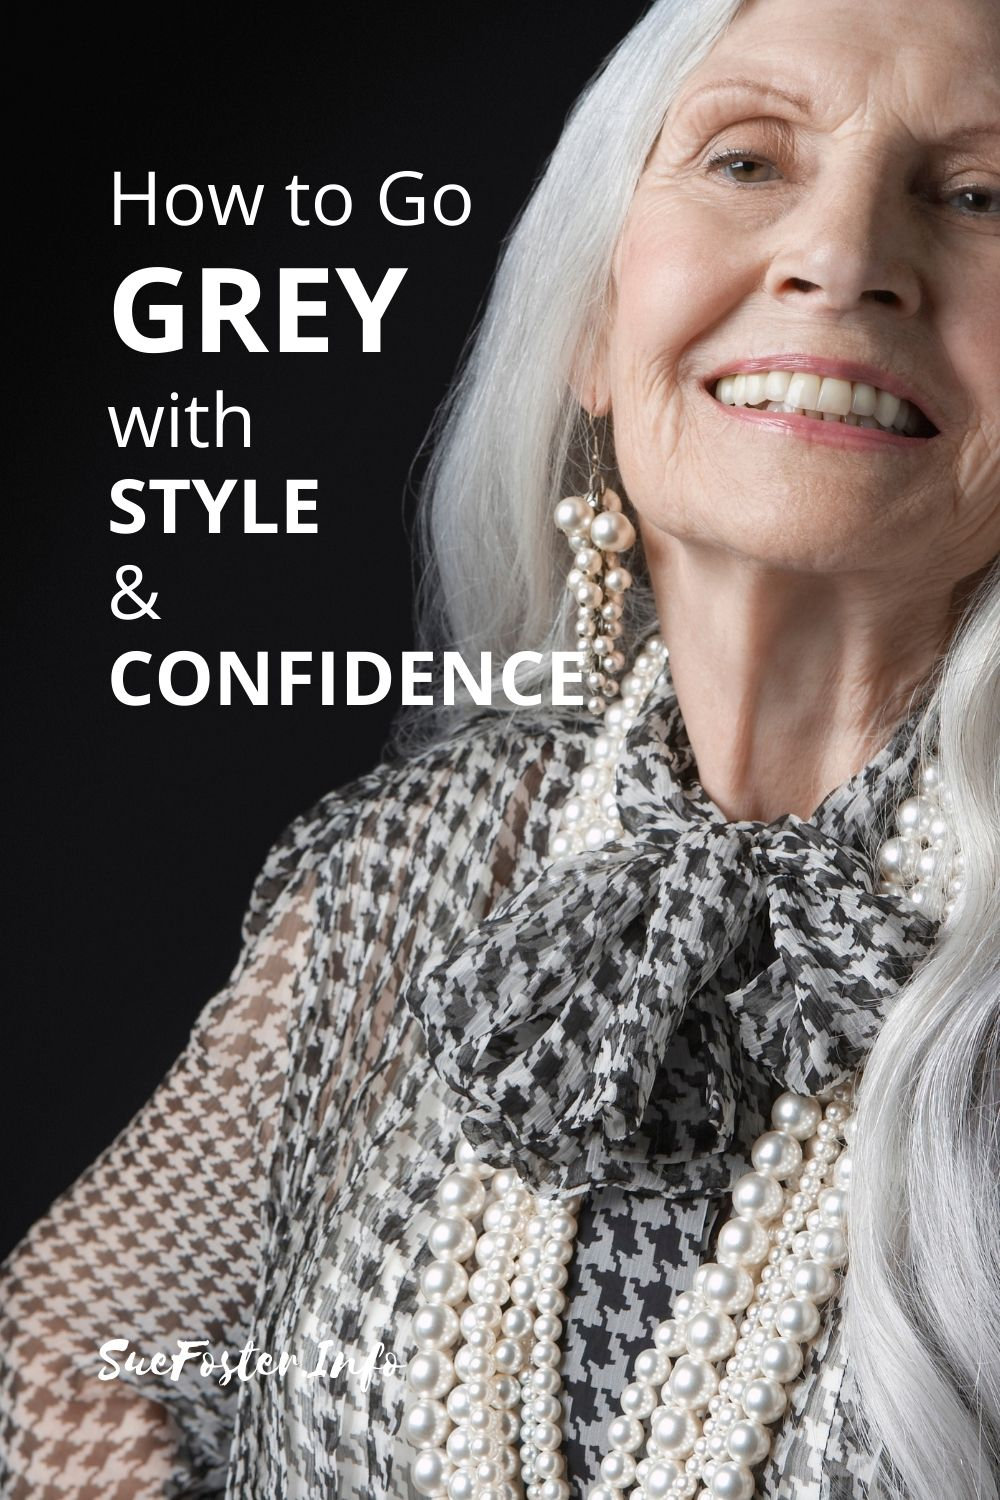 How to go grey with style and confidence.